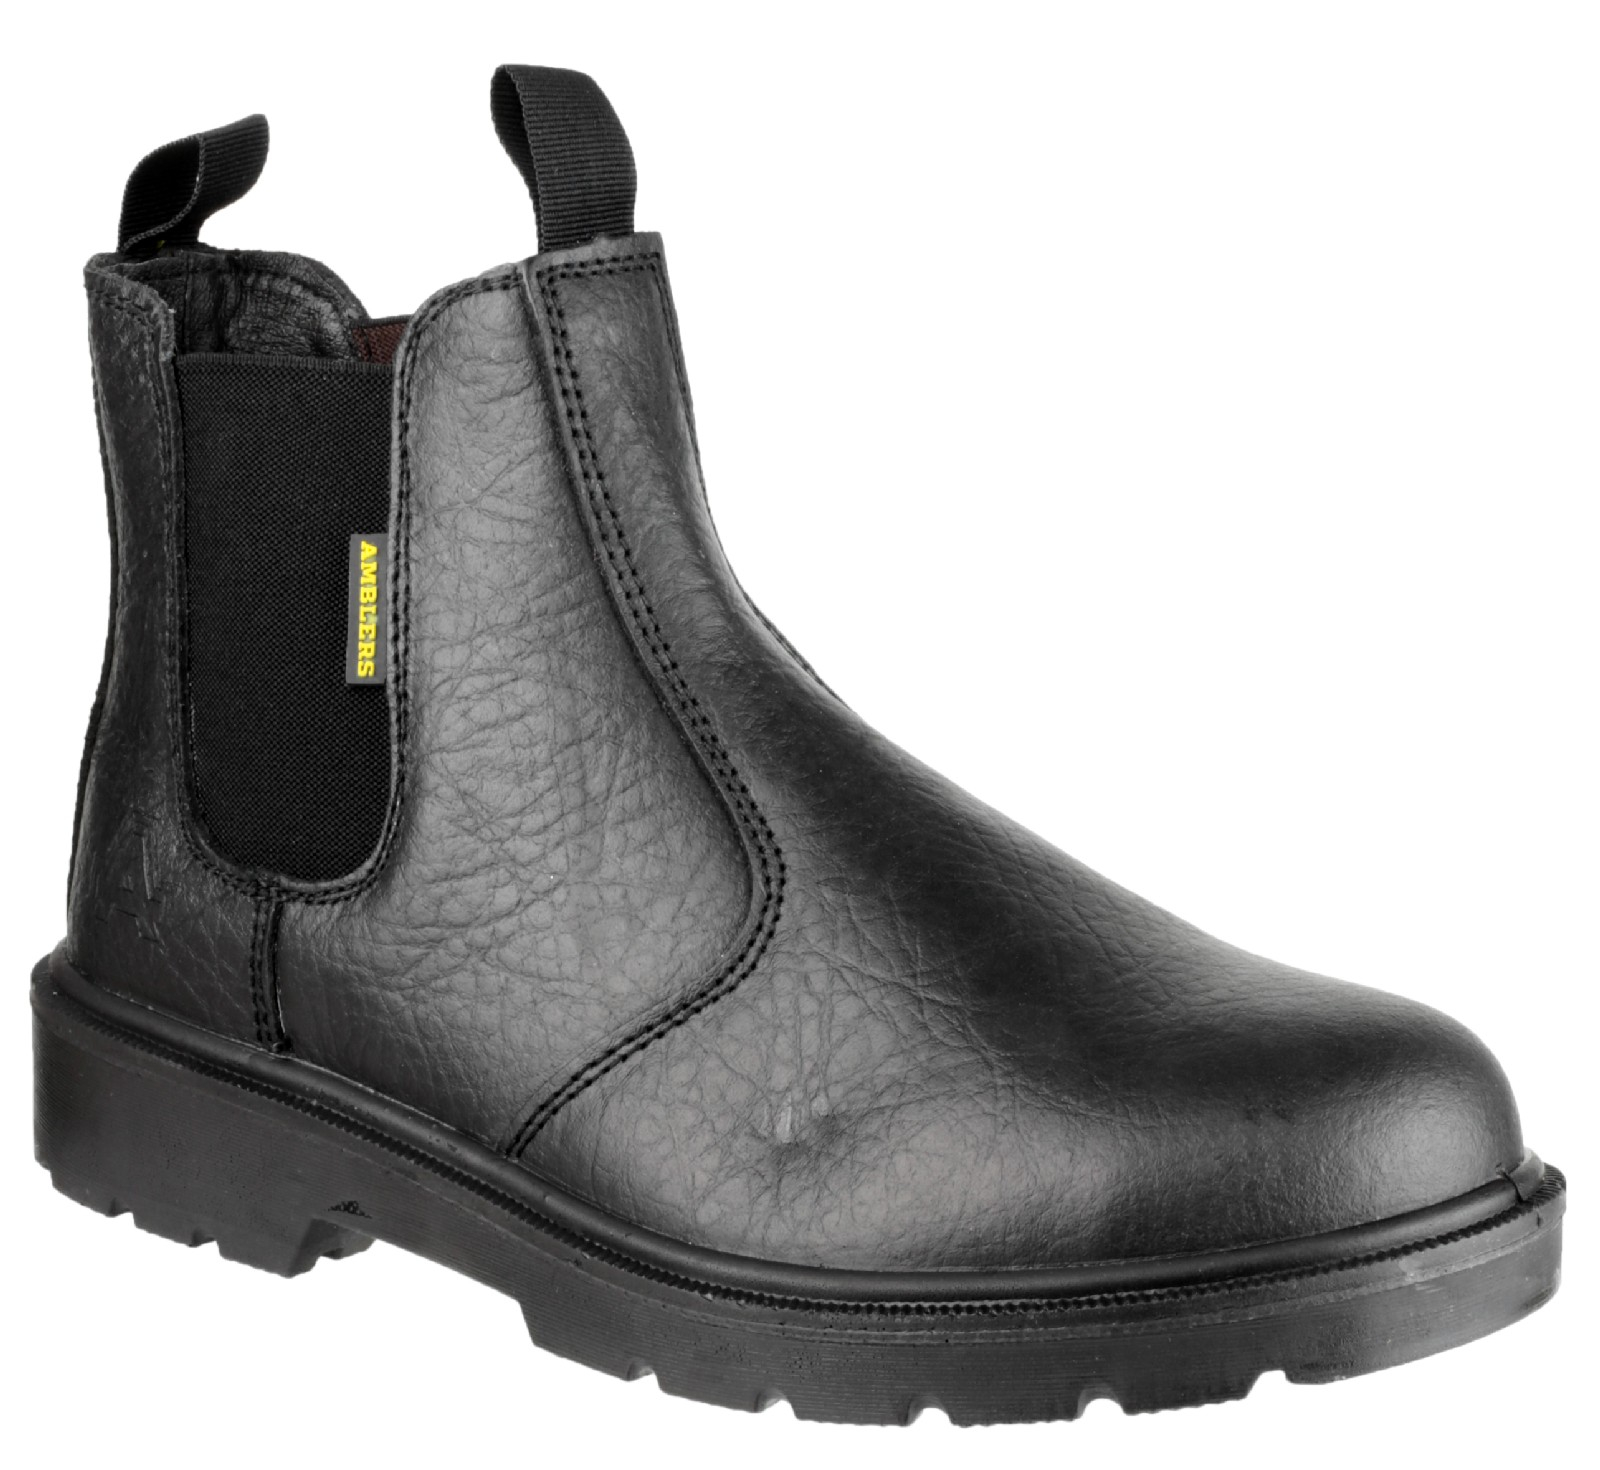 FS116 Safety Boots